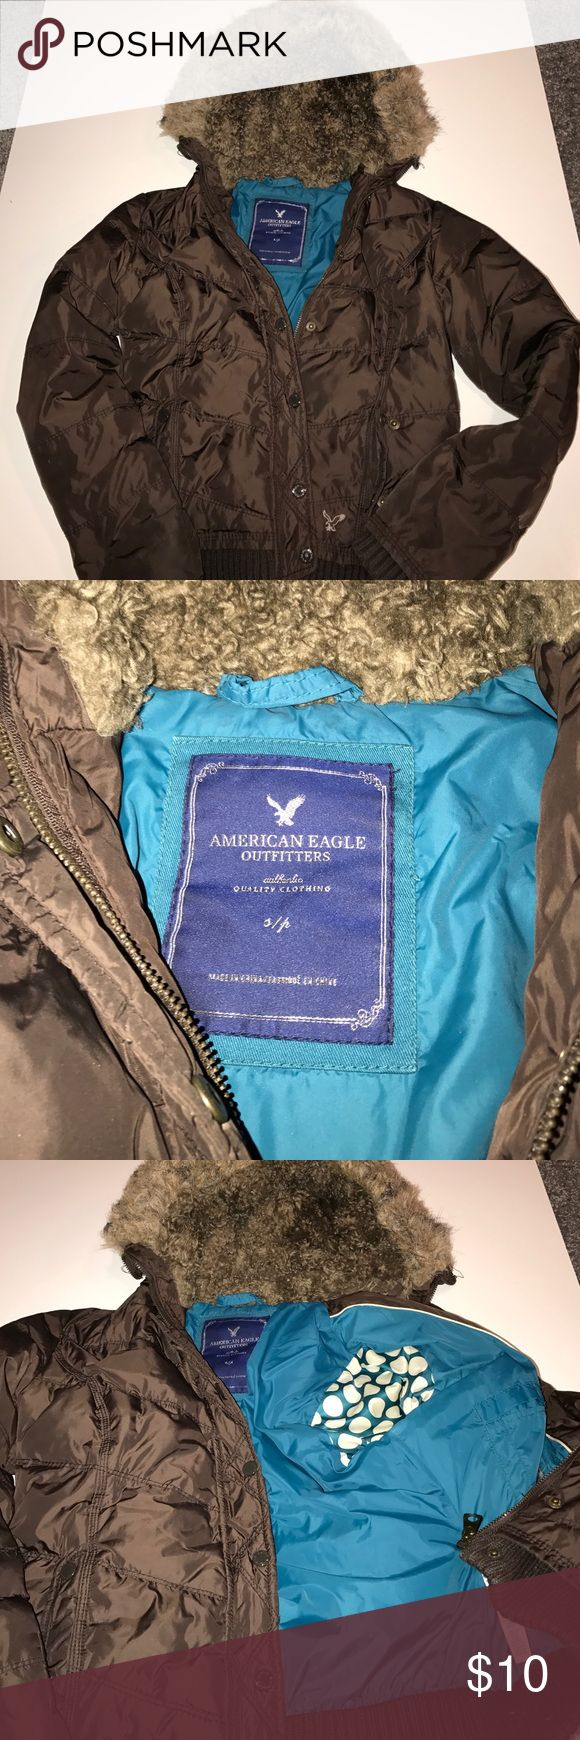 American Eagle Size Small Fur Zip Up Jacket American Eagle Size Small Brown Zip Up Jacket. Polka dot and turquoise color on the inside. Fur hood that is NOT detachable. The hood is matted only from being washed (see last picture). Has two outer pockets. Good condition, worn a few times then washed. Body: 100% nylon / Sleeve: 100% polyester/ Hood: 76% acrylic, 24% polyester trim / Faux Fur: 84% acrylic, 16% polyester American Eagle Outfitters Jackets & Coats Puffers